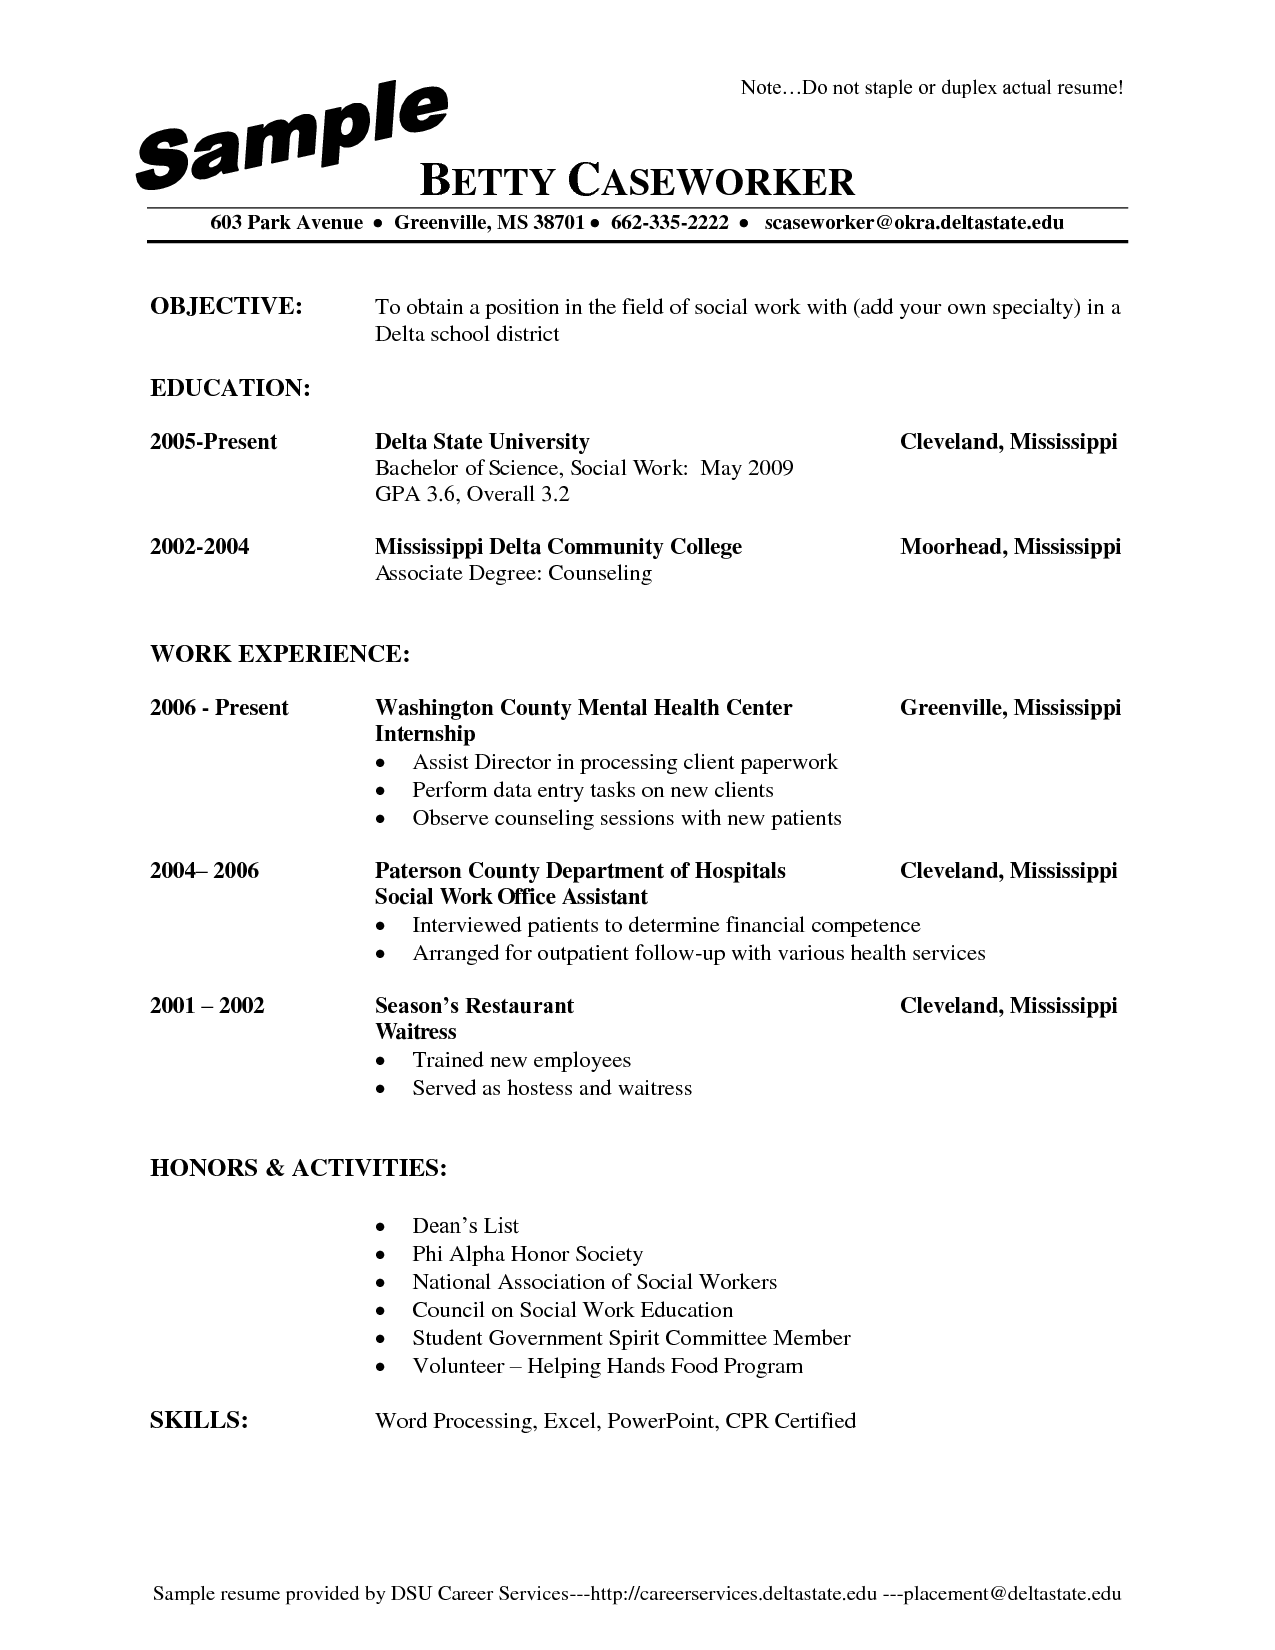 Waitress Resume Skills Examples - http://www.jobresume.website ...